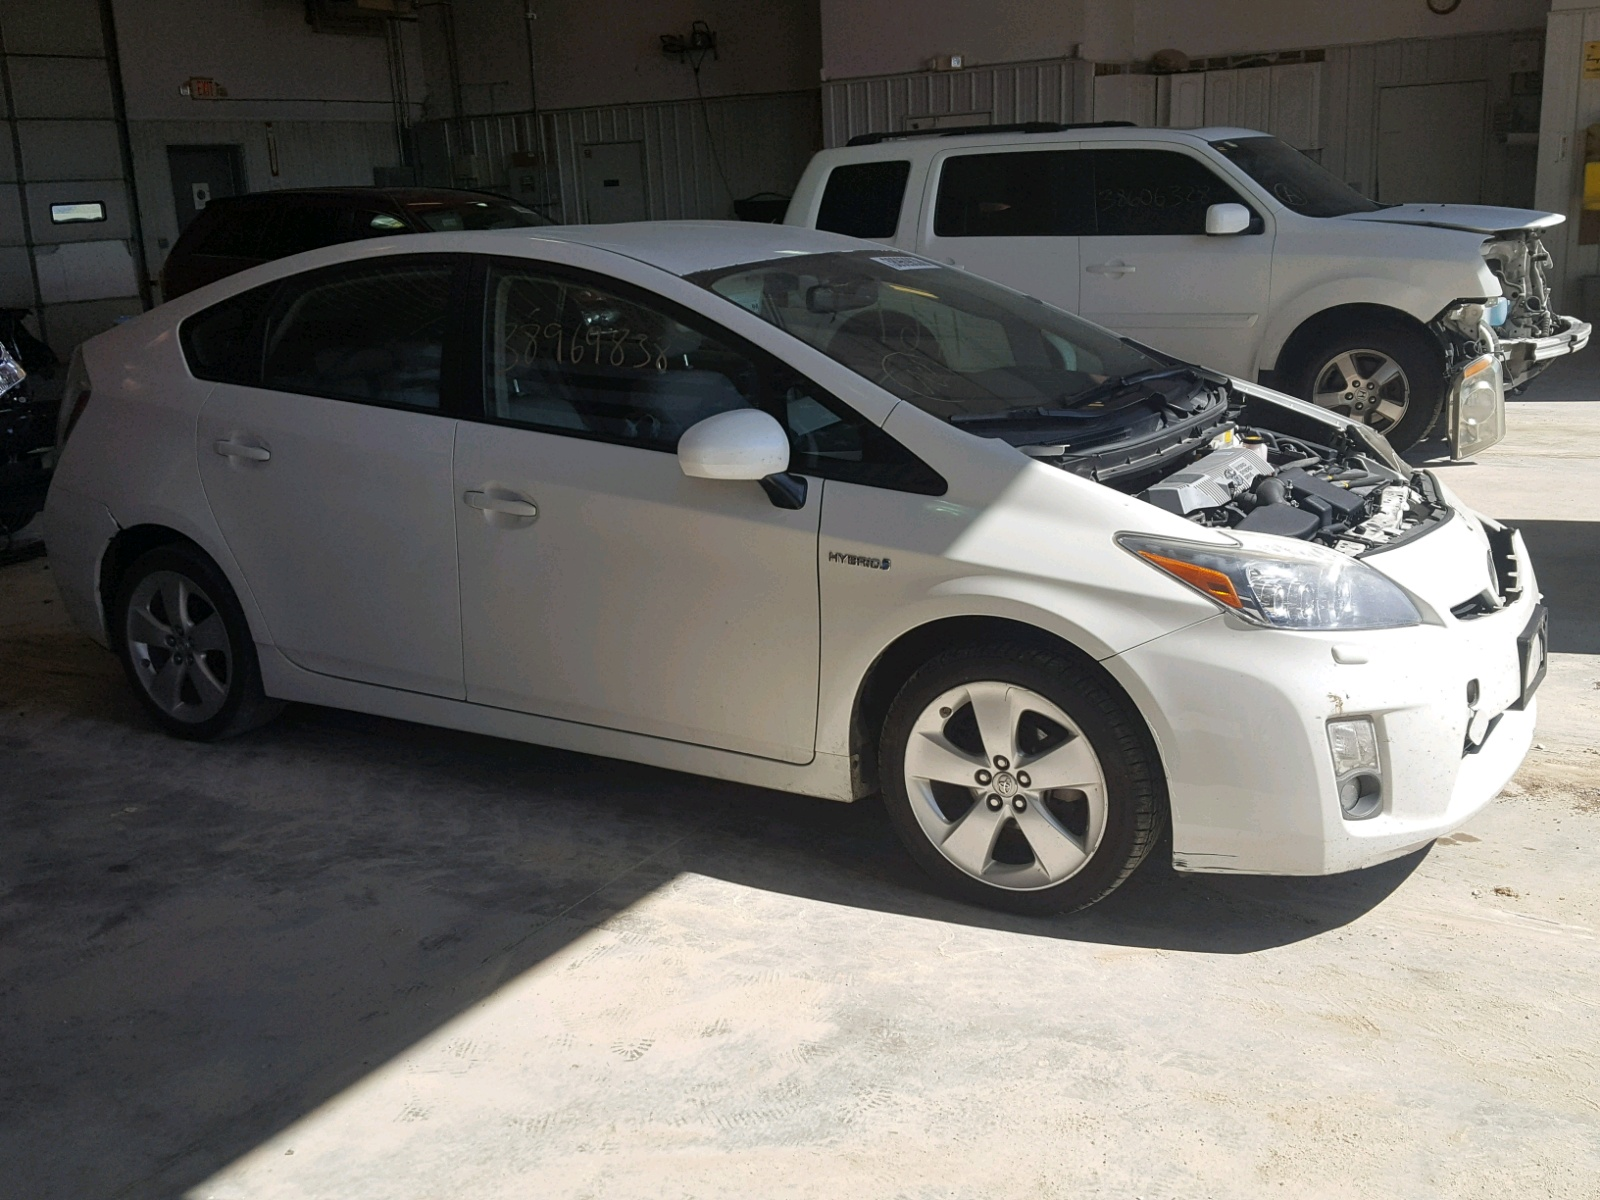 2010 Toyota Prius for sale at Copart Columbia MO Lot